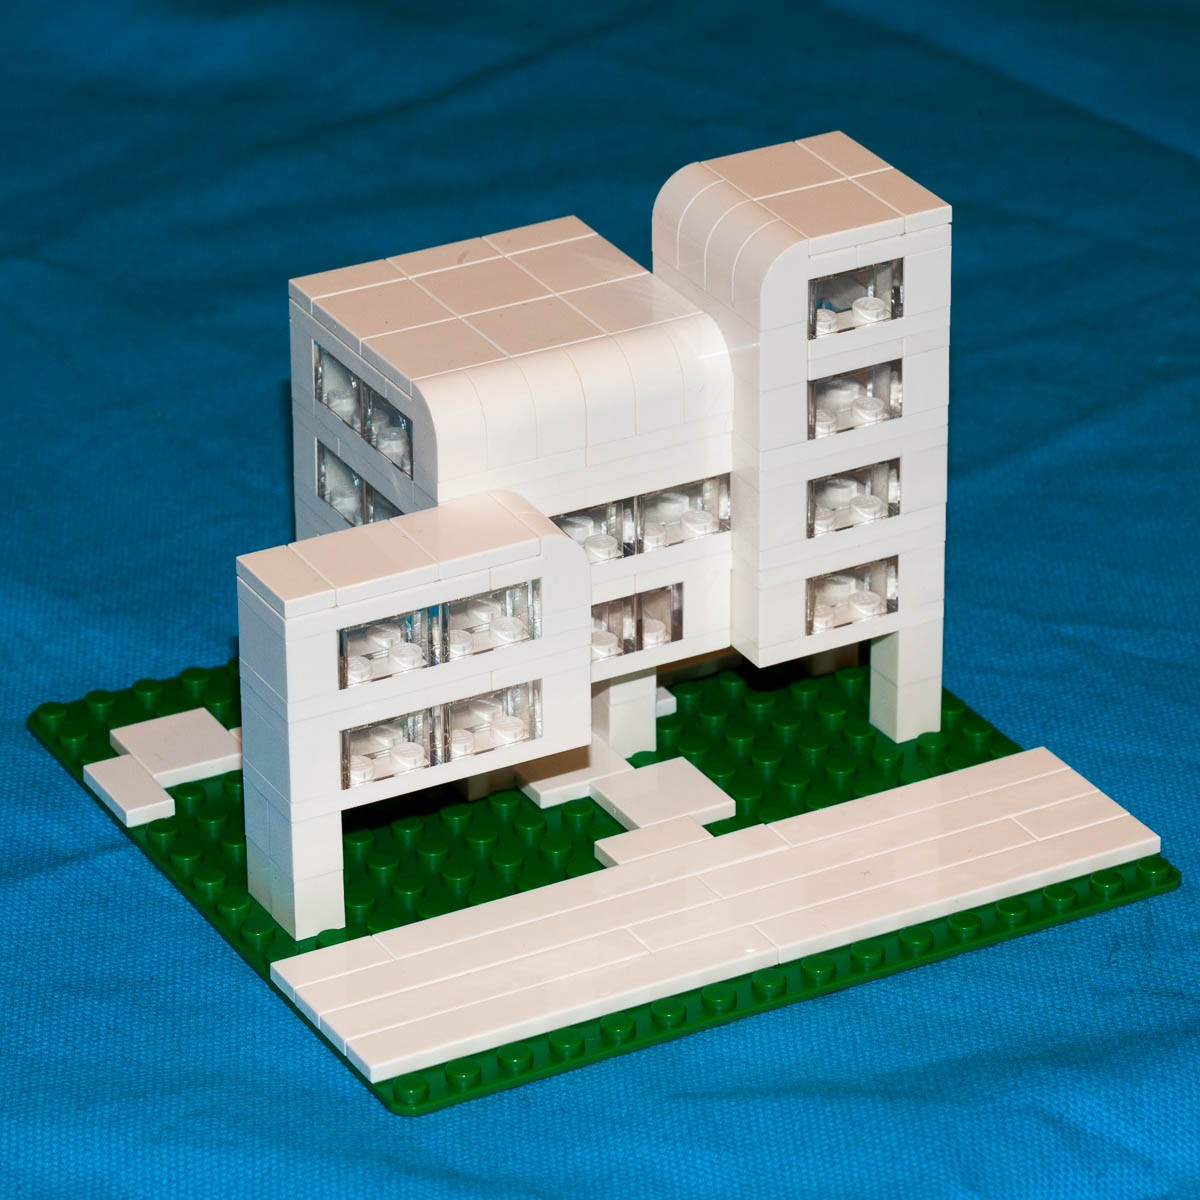 Building A Studio Apartment: Lego Challenge #13: Build A Model In The Brutalist Style